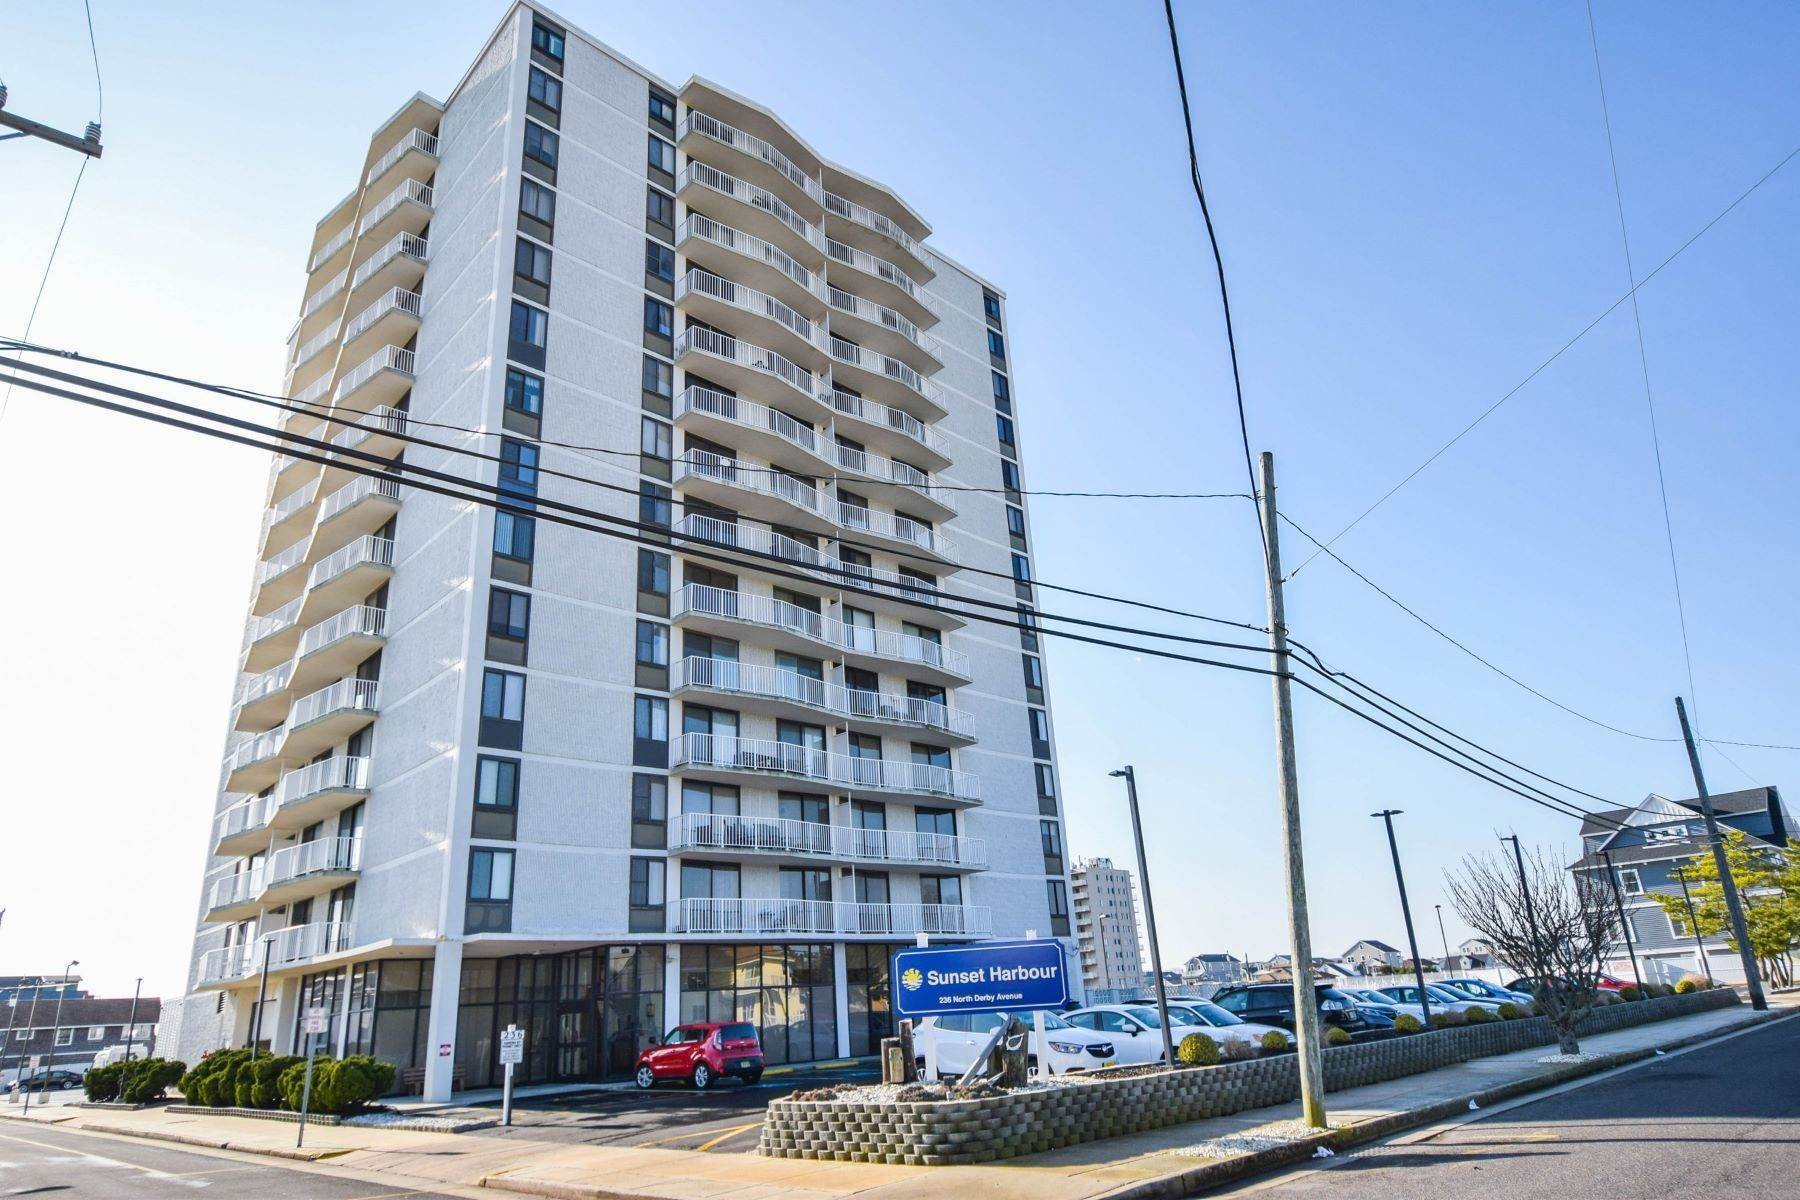 Condominiums for Sale at 236 N Derby Avenue Unit # 401 & 408 236 N Derby Avenue, Unit # 401 & 408 Ventnor, New Jersey 08406 United States